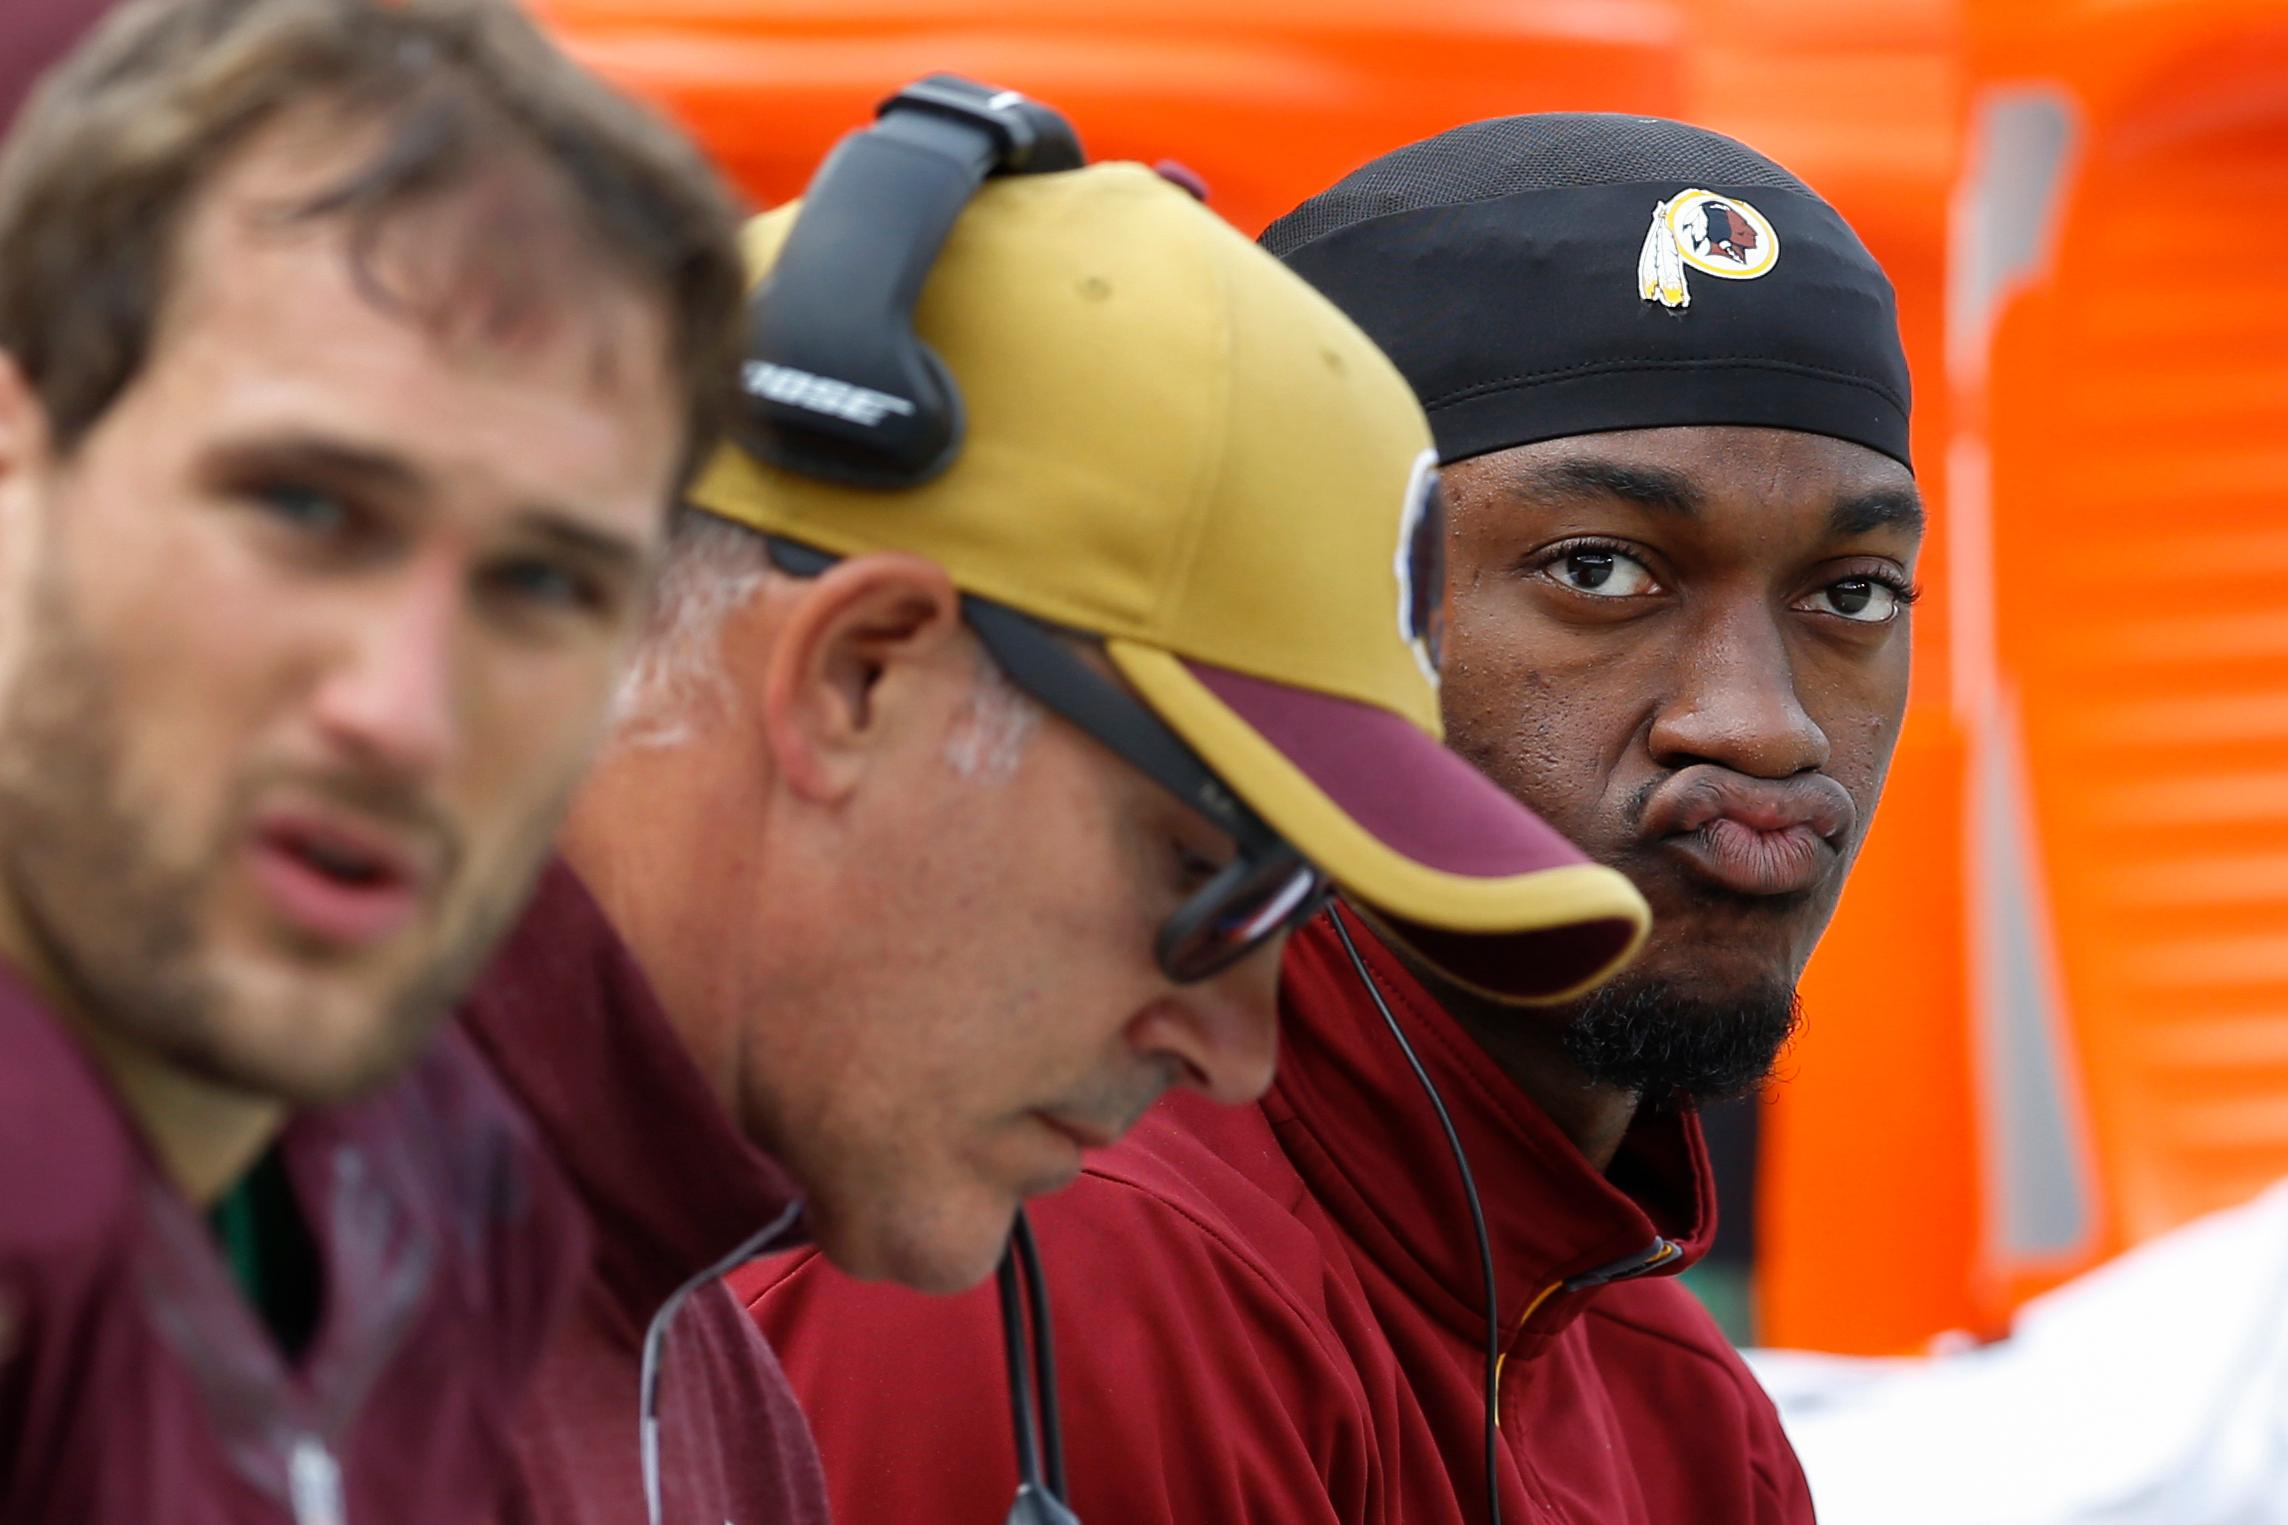 Washington Redskins quarterback Robert Griffin III (10) watches the action from the bench during the first half of an NFL football game against the Tampa Bay Buccaneers in Landover, Md., Sunday, Oct. 25, 2015. (AP Photo/Patrick Semansky)